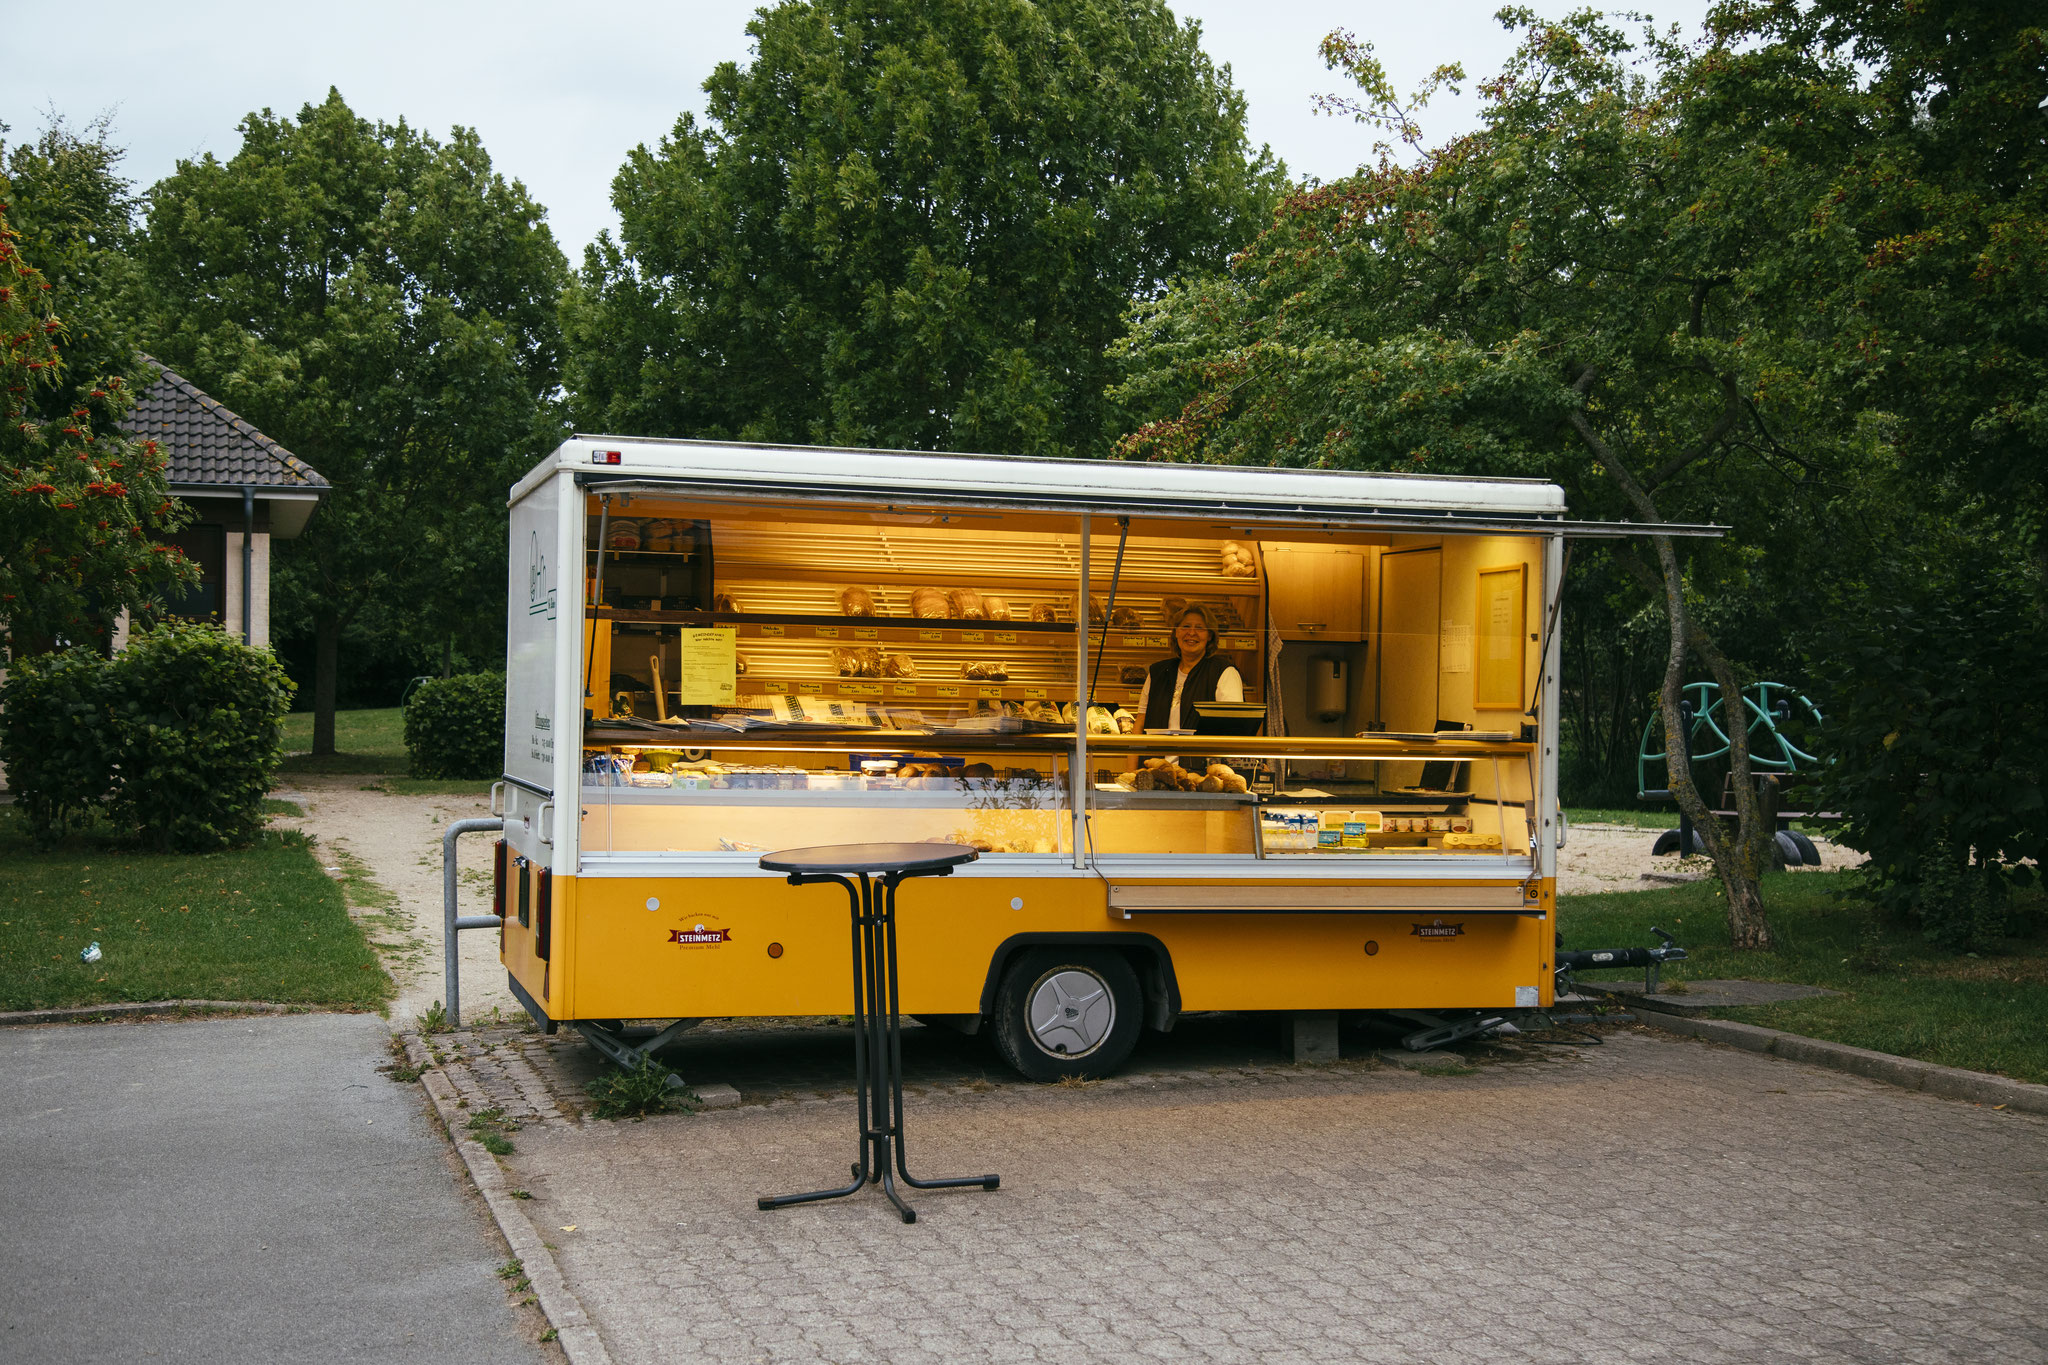 Bäckerwagen in Maasholm-Bad